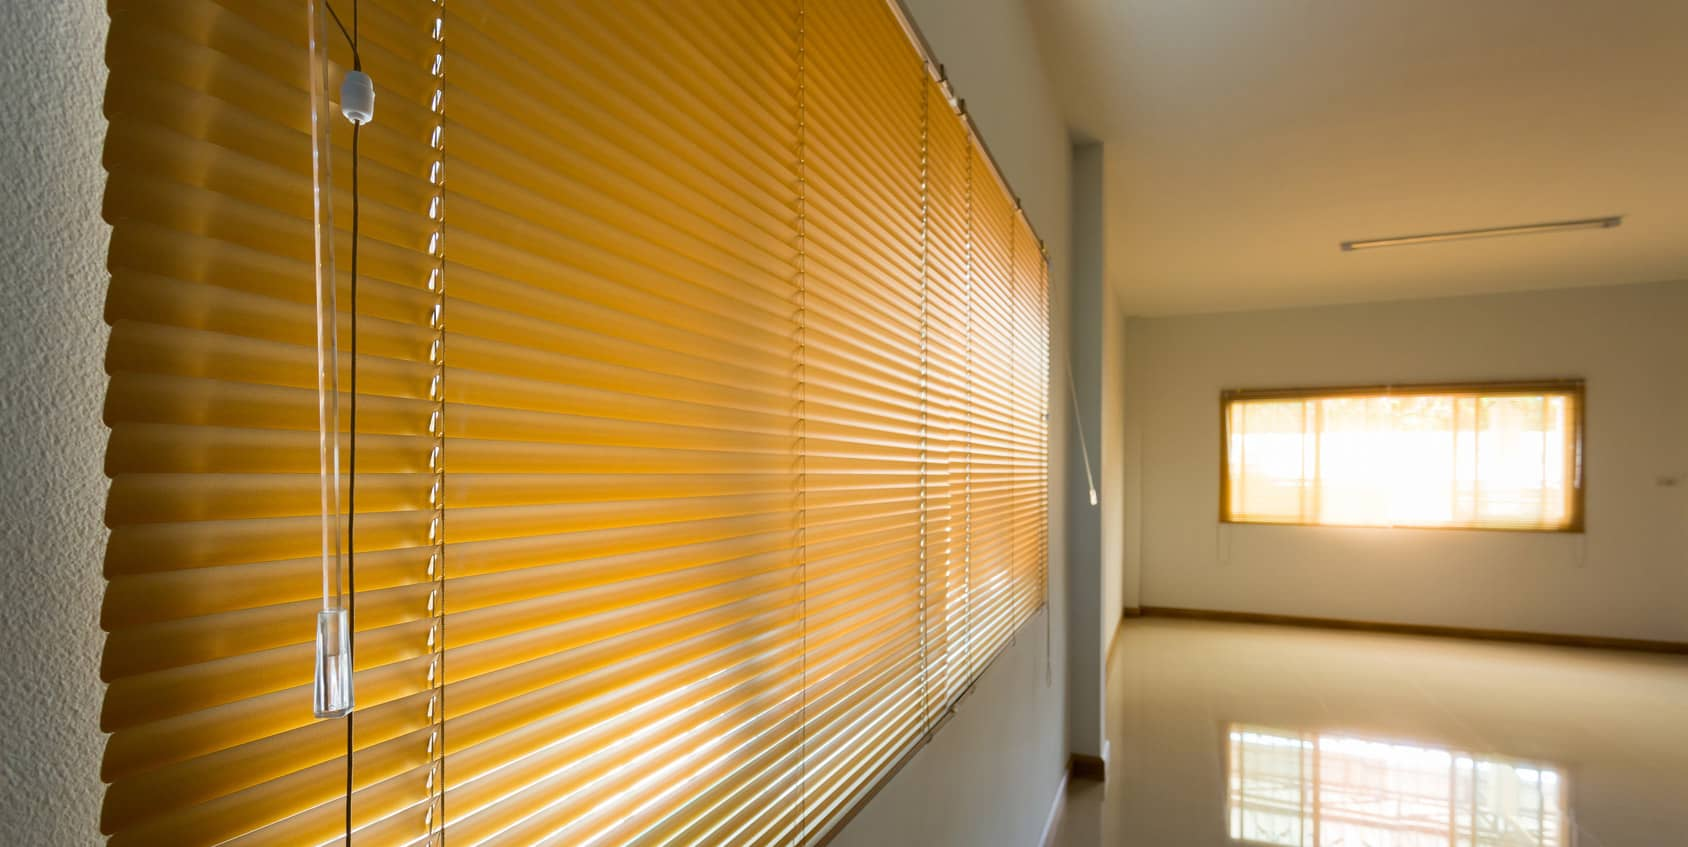 long slider blinds covering window of empty room